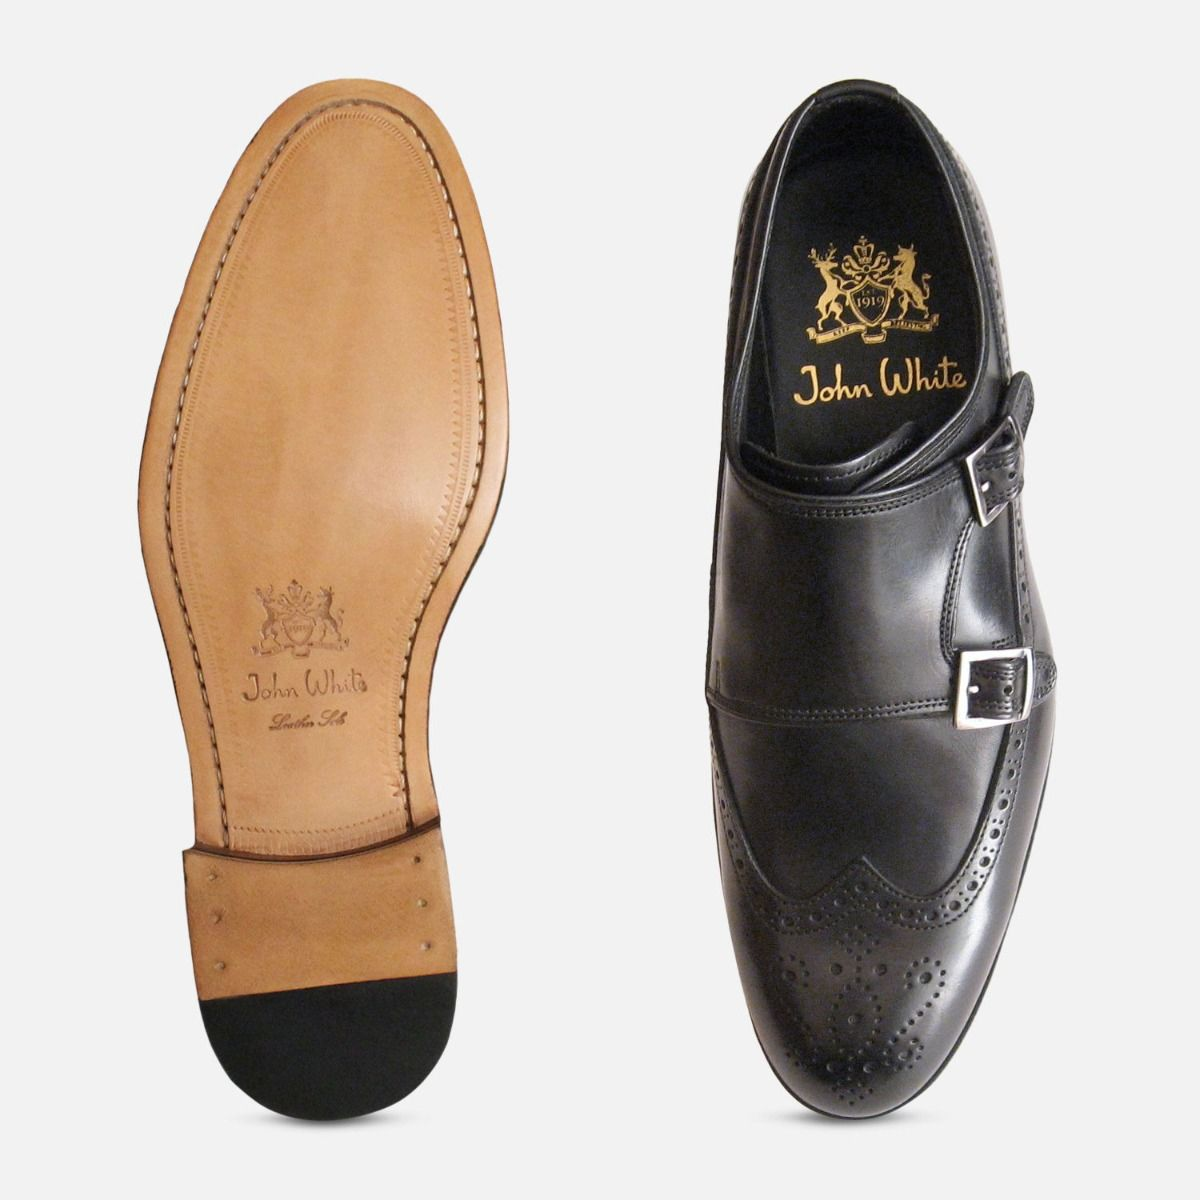 Black Calf Double Buckle Shoes Designer John White Brogues